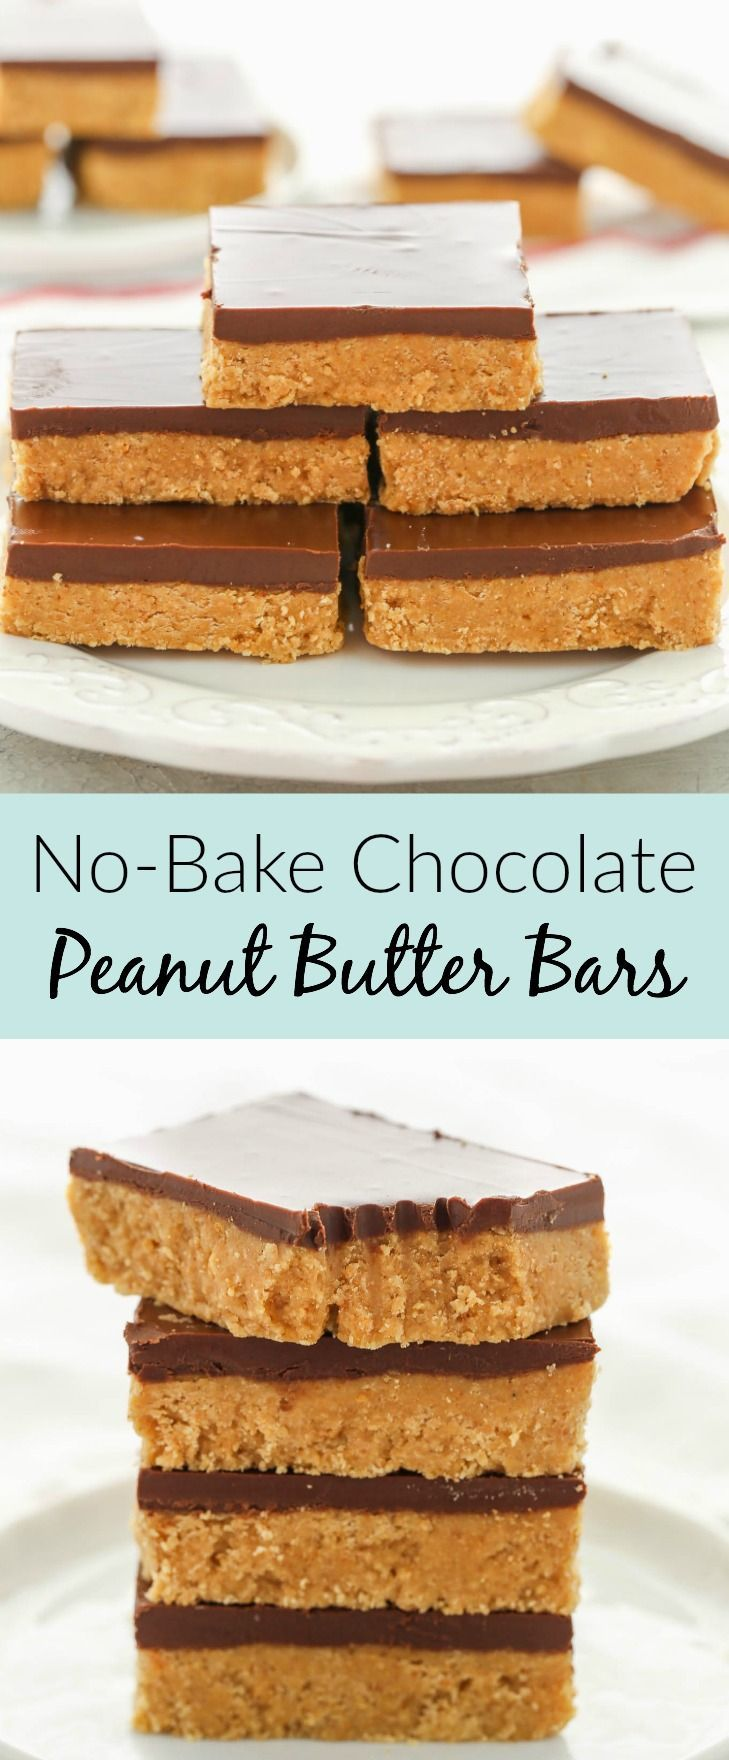 These No-Bake Chocolate Peanut Butter Bars only re... - #Bars #Butter #Chocolate #NoBake #Peanut #peanutbutter #peanutbuttersquares